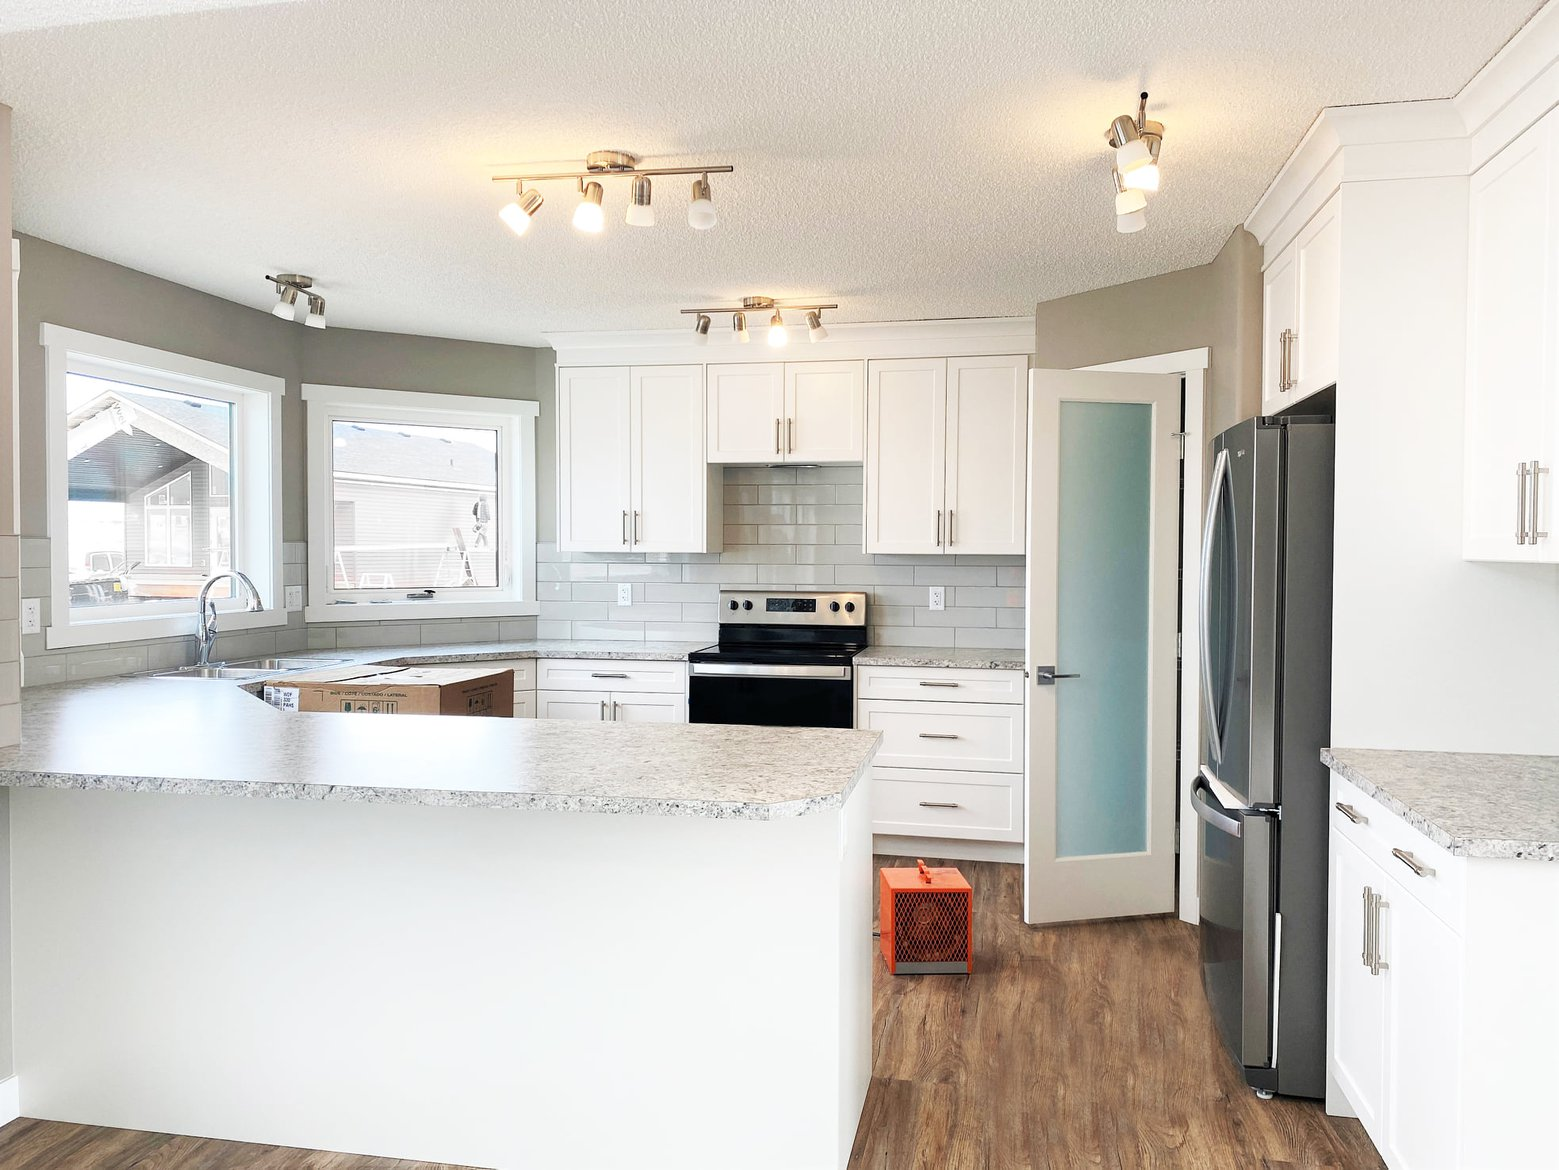 nelson homes prebuilt kitchen in a ready to move modular home.jpg